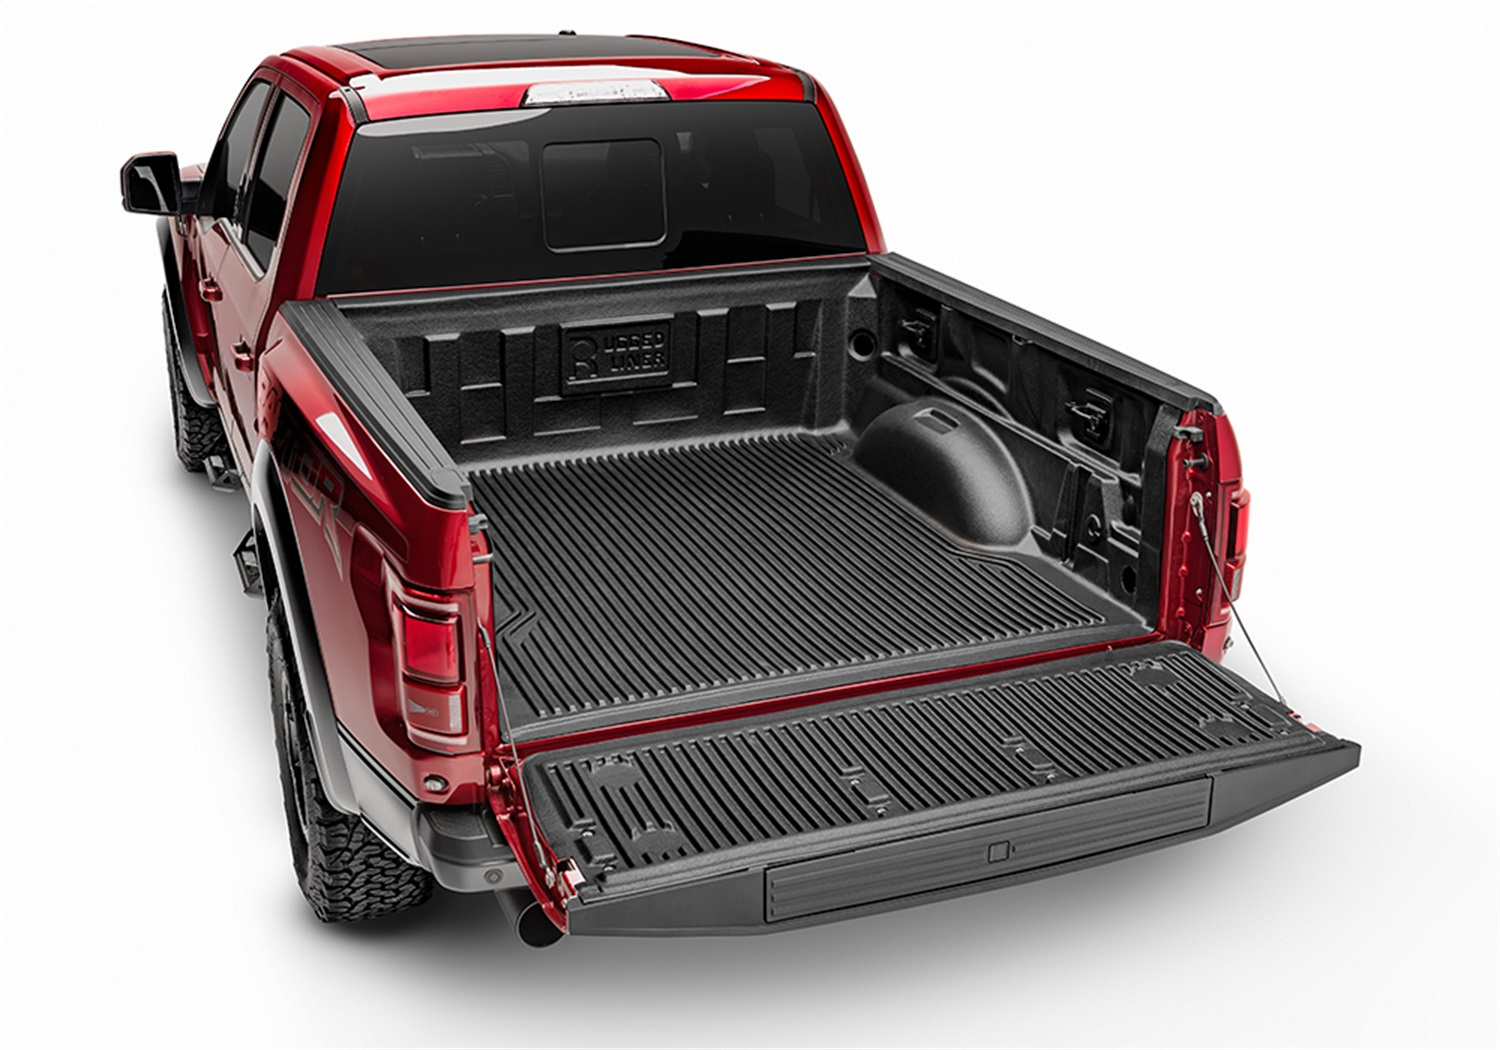 Rugged Liner Under Rail Bed Liner, Incl. Bedliner, Tailgate Cover, Hardware, w/o Cargo Channel System